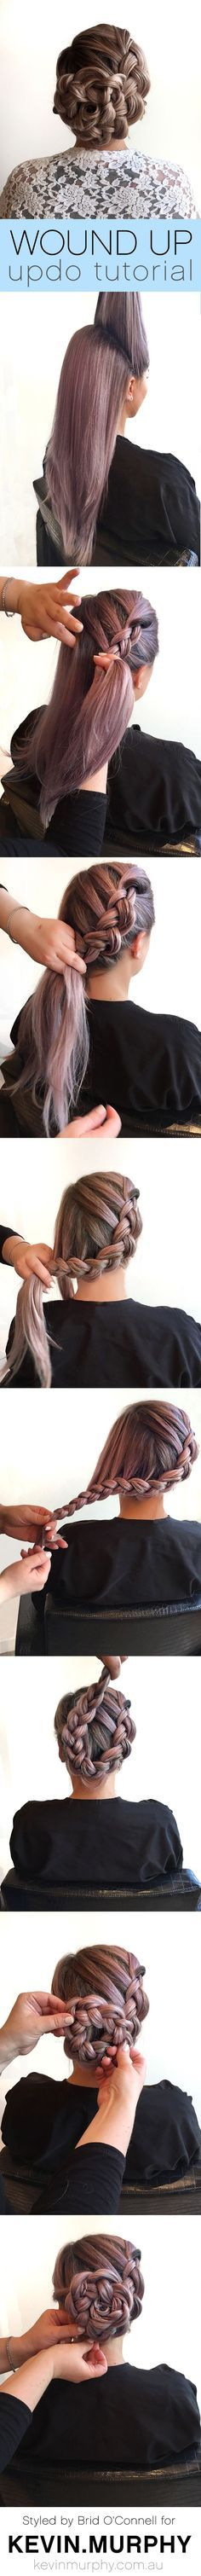 Braided Updo Braided updo using a simple dutch braid base.Braided updo using a simple dutch braid base. Unique Hairstyles, Pretty Hairstyles, Braided Hairstyles, Wedding Hairstyles, Famous Hairstyles, Homecoming Hairstyles, Romantic Hairstyles, Wedding Updo, Latest Hairstyles